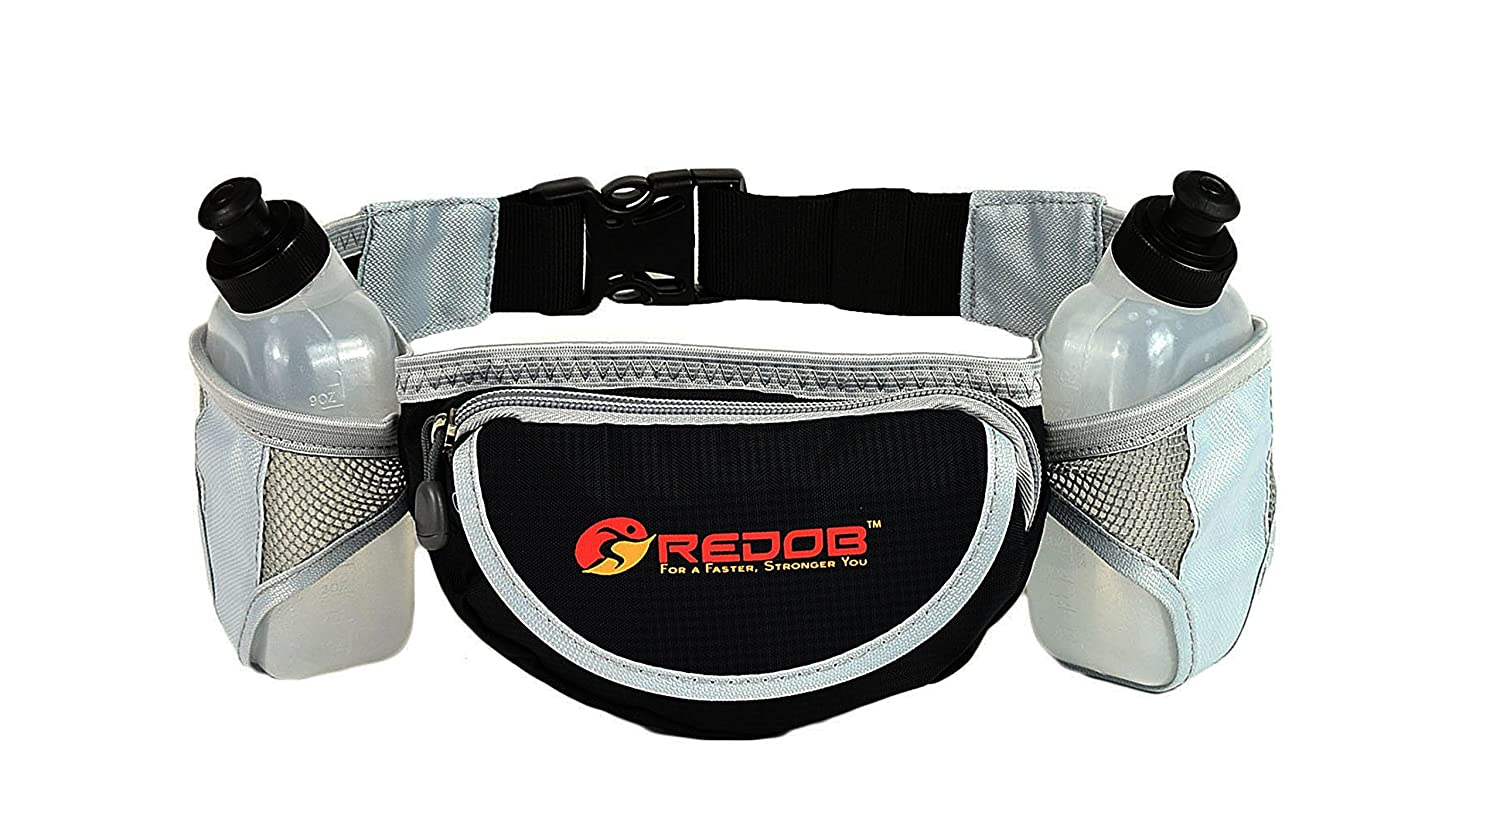 Durable Handy Running Hydration Belt With 2 bottels included 10 Oz Each Perfect Fuel Belt Runners Waist Pack by Redob